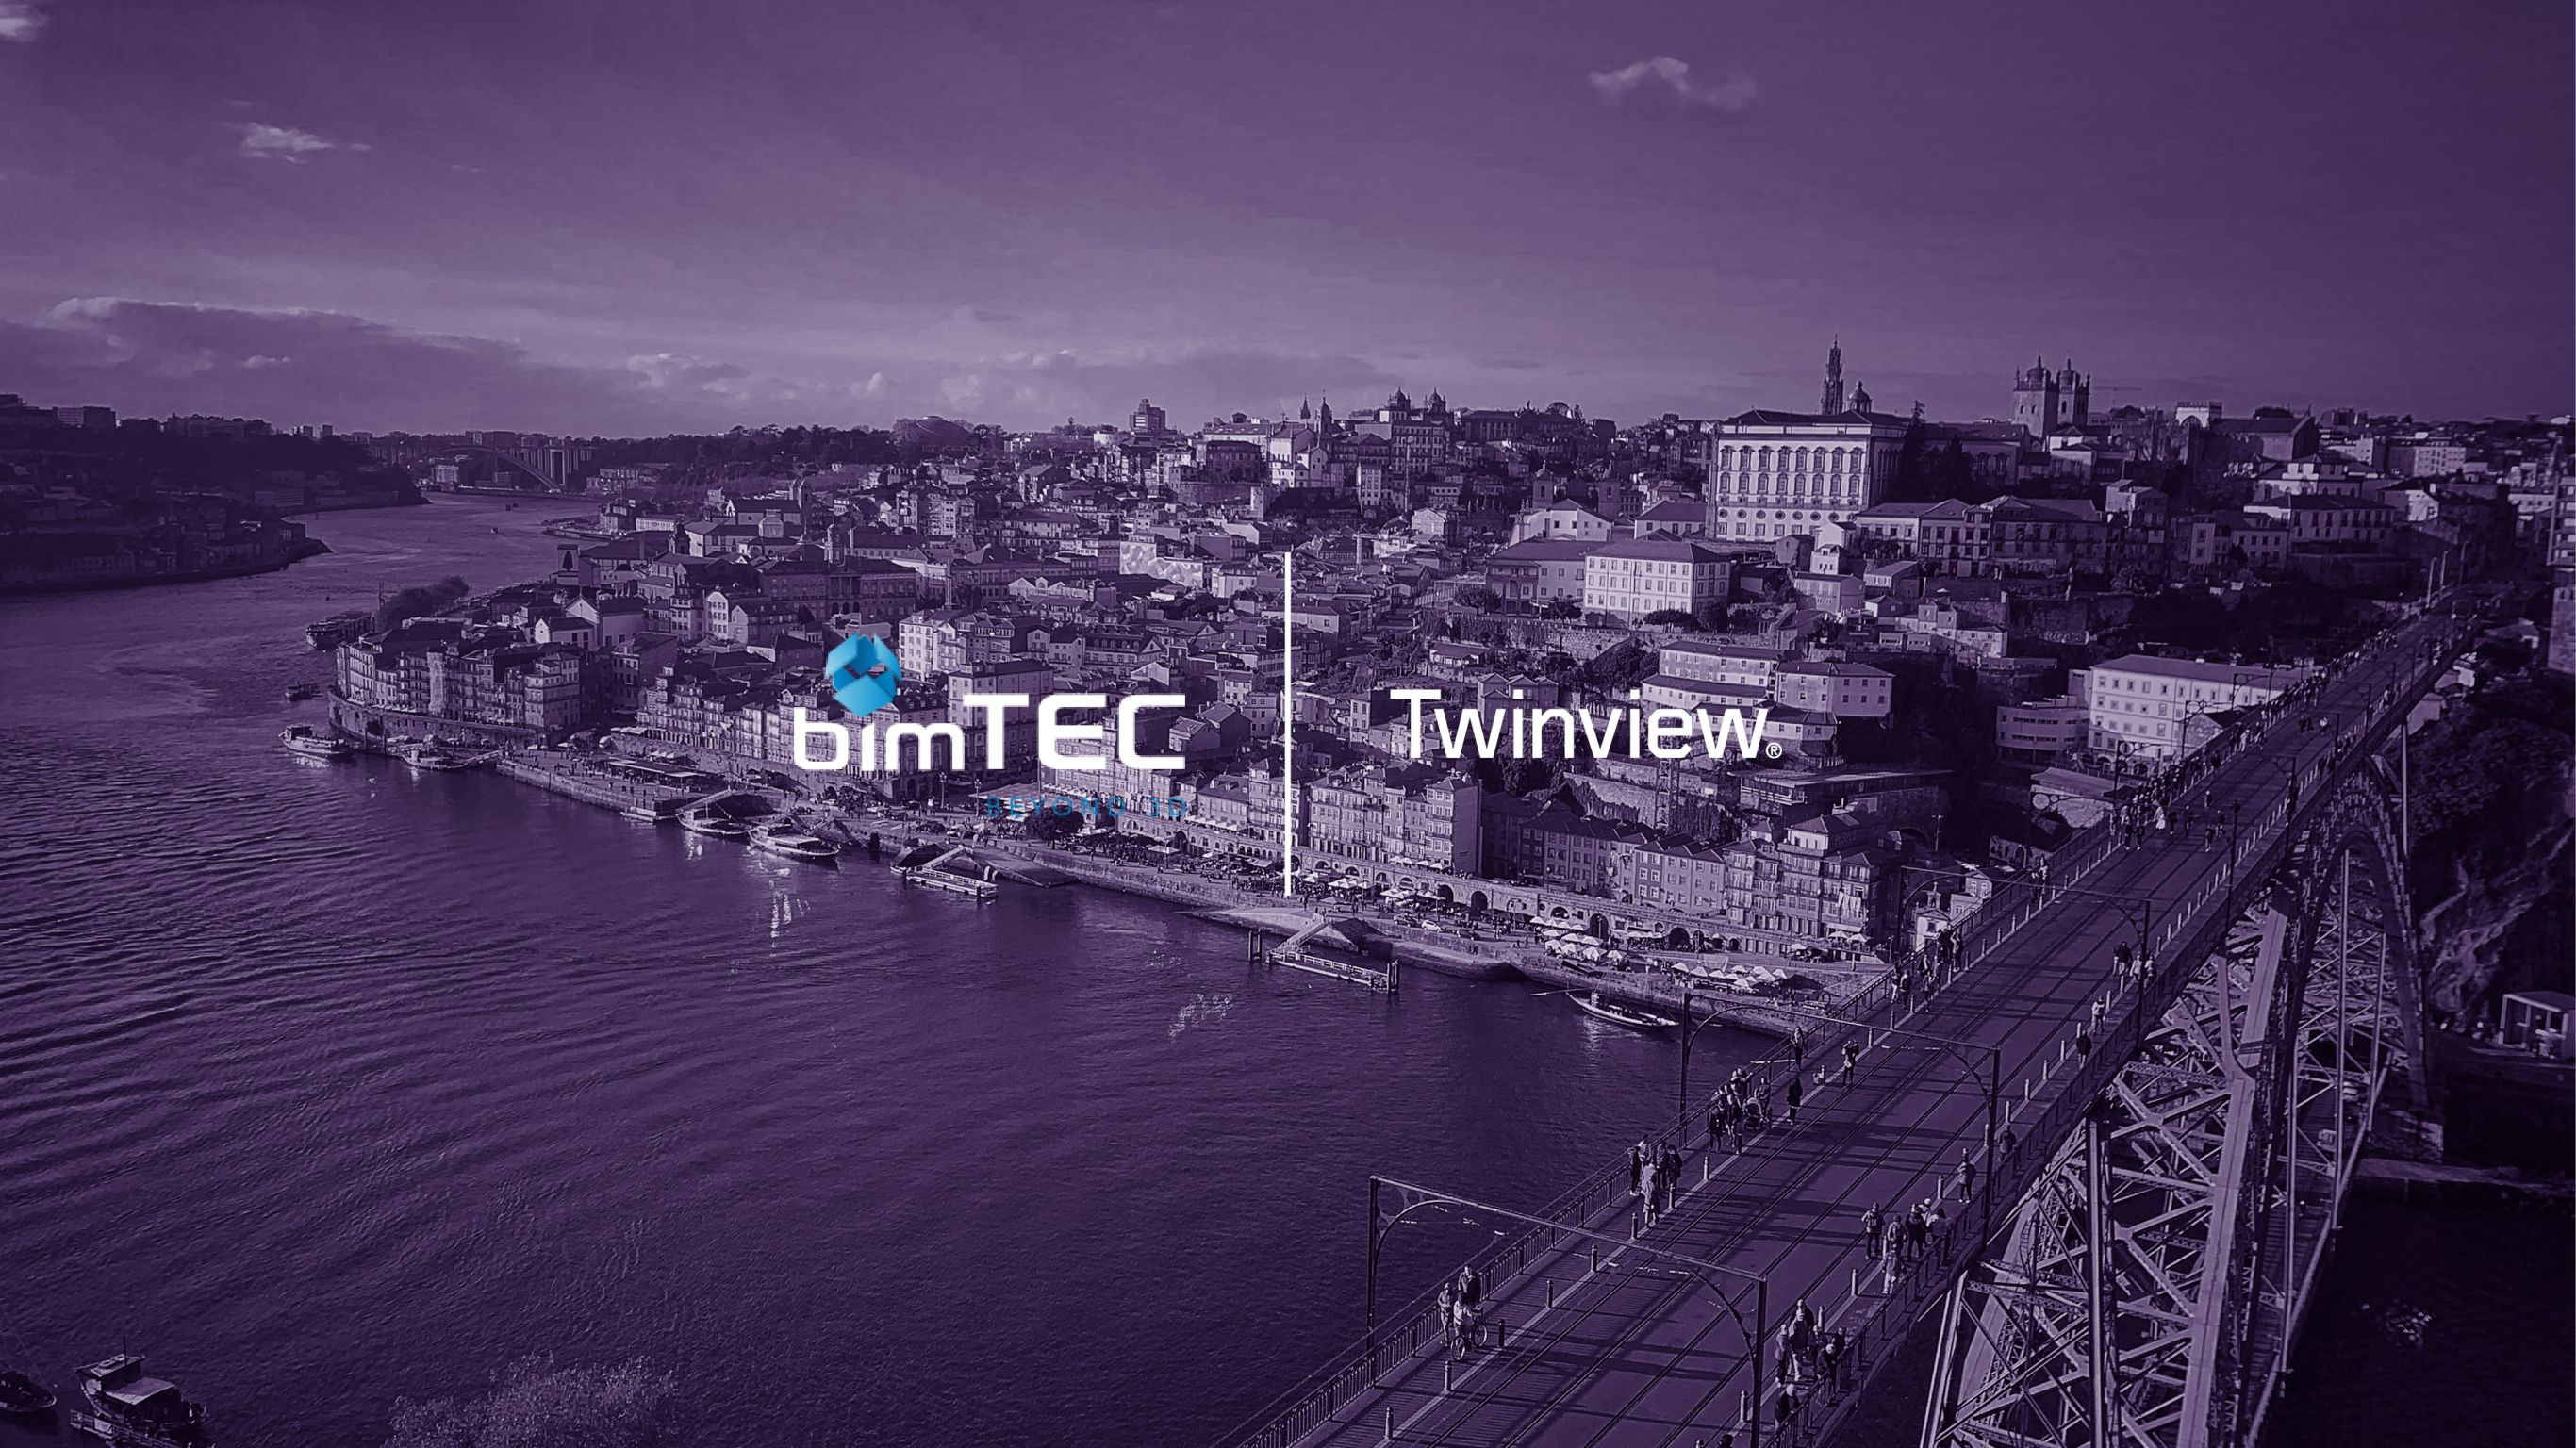 Twinview and bimTEC announce strategic partnership